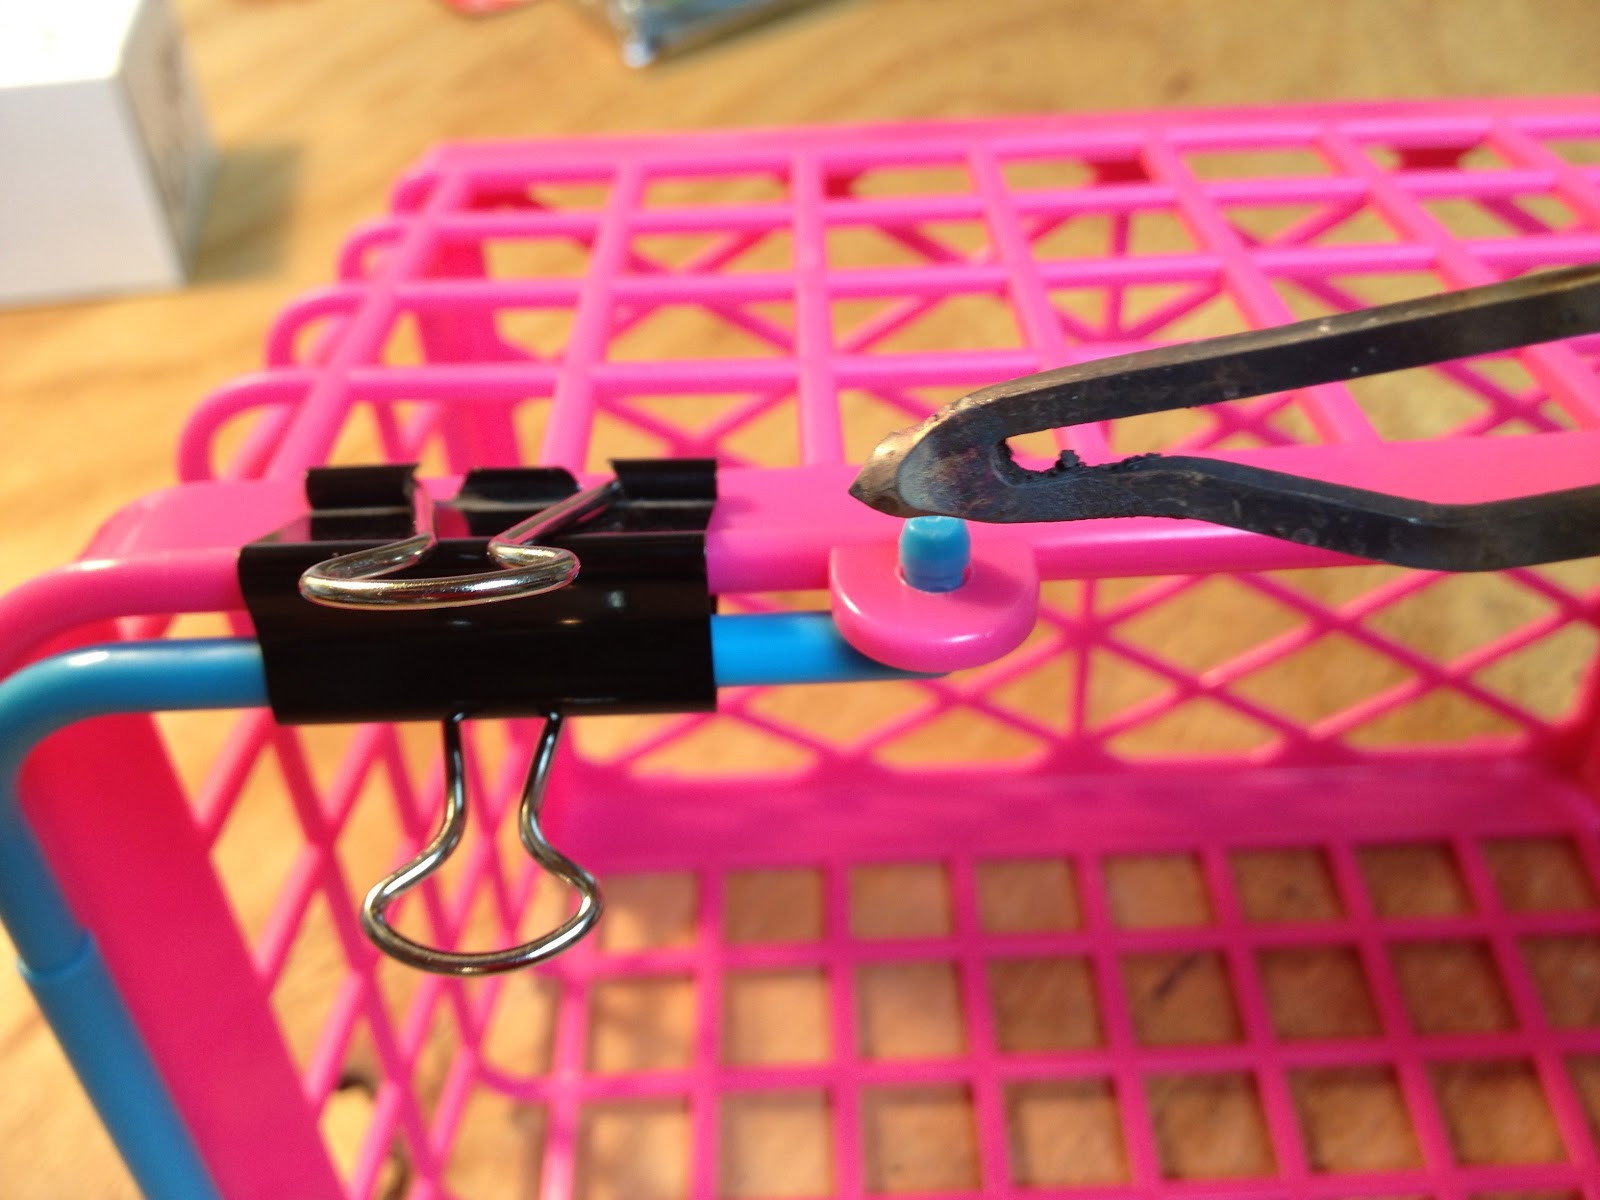 repair a plastic basket 39 s snap on handle with a soldering iron share your repair. Black Bedroom Furniture Sets. Home Design Ideas